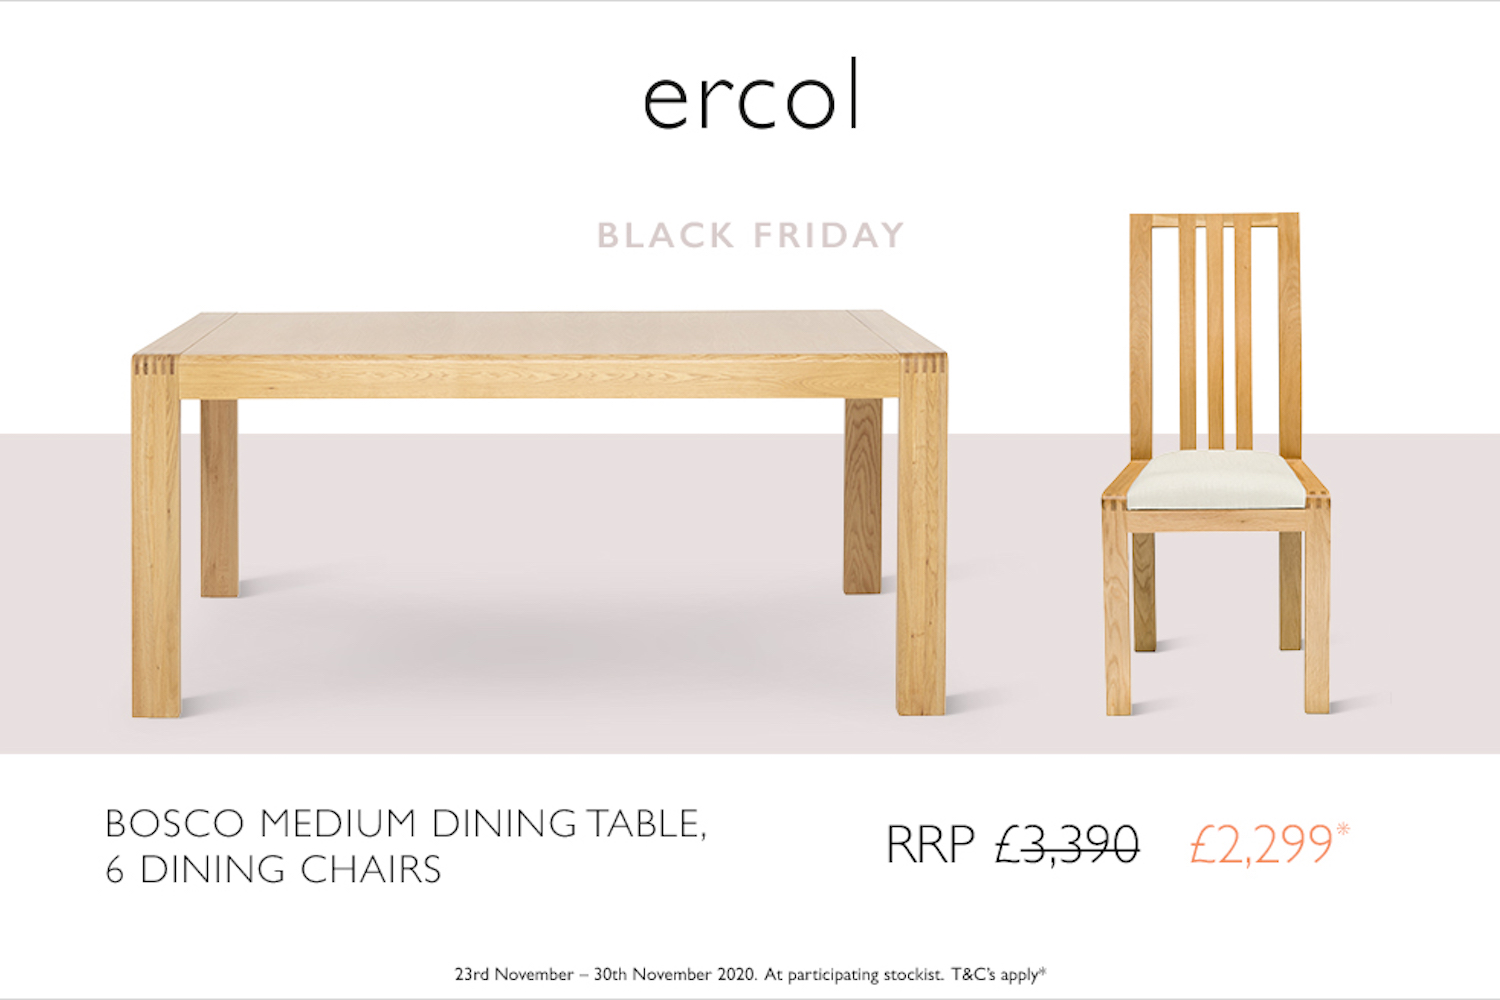 ercol Black Friday offer